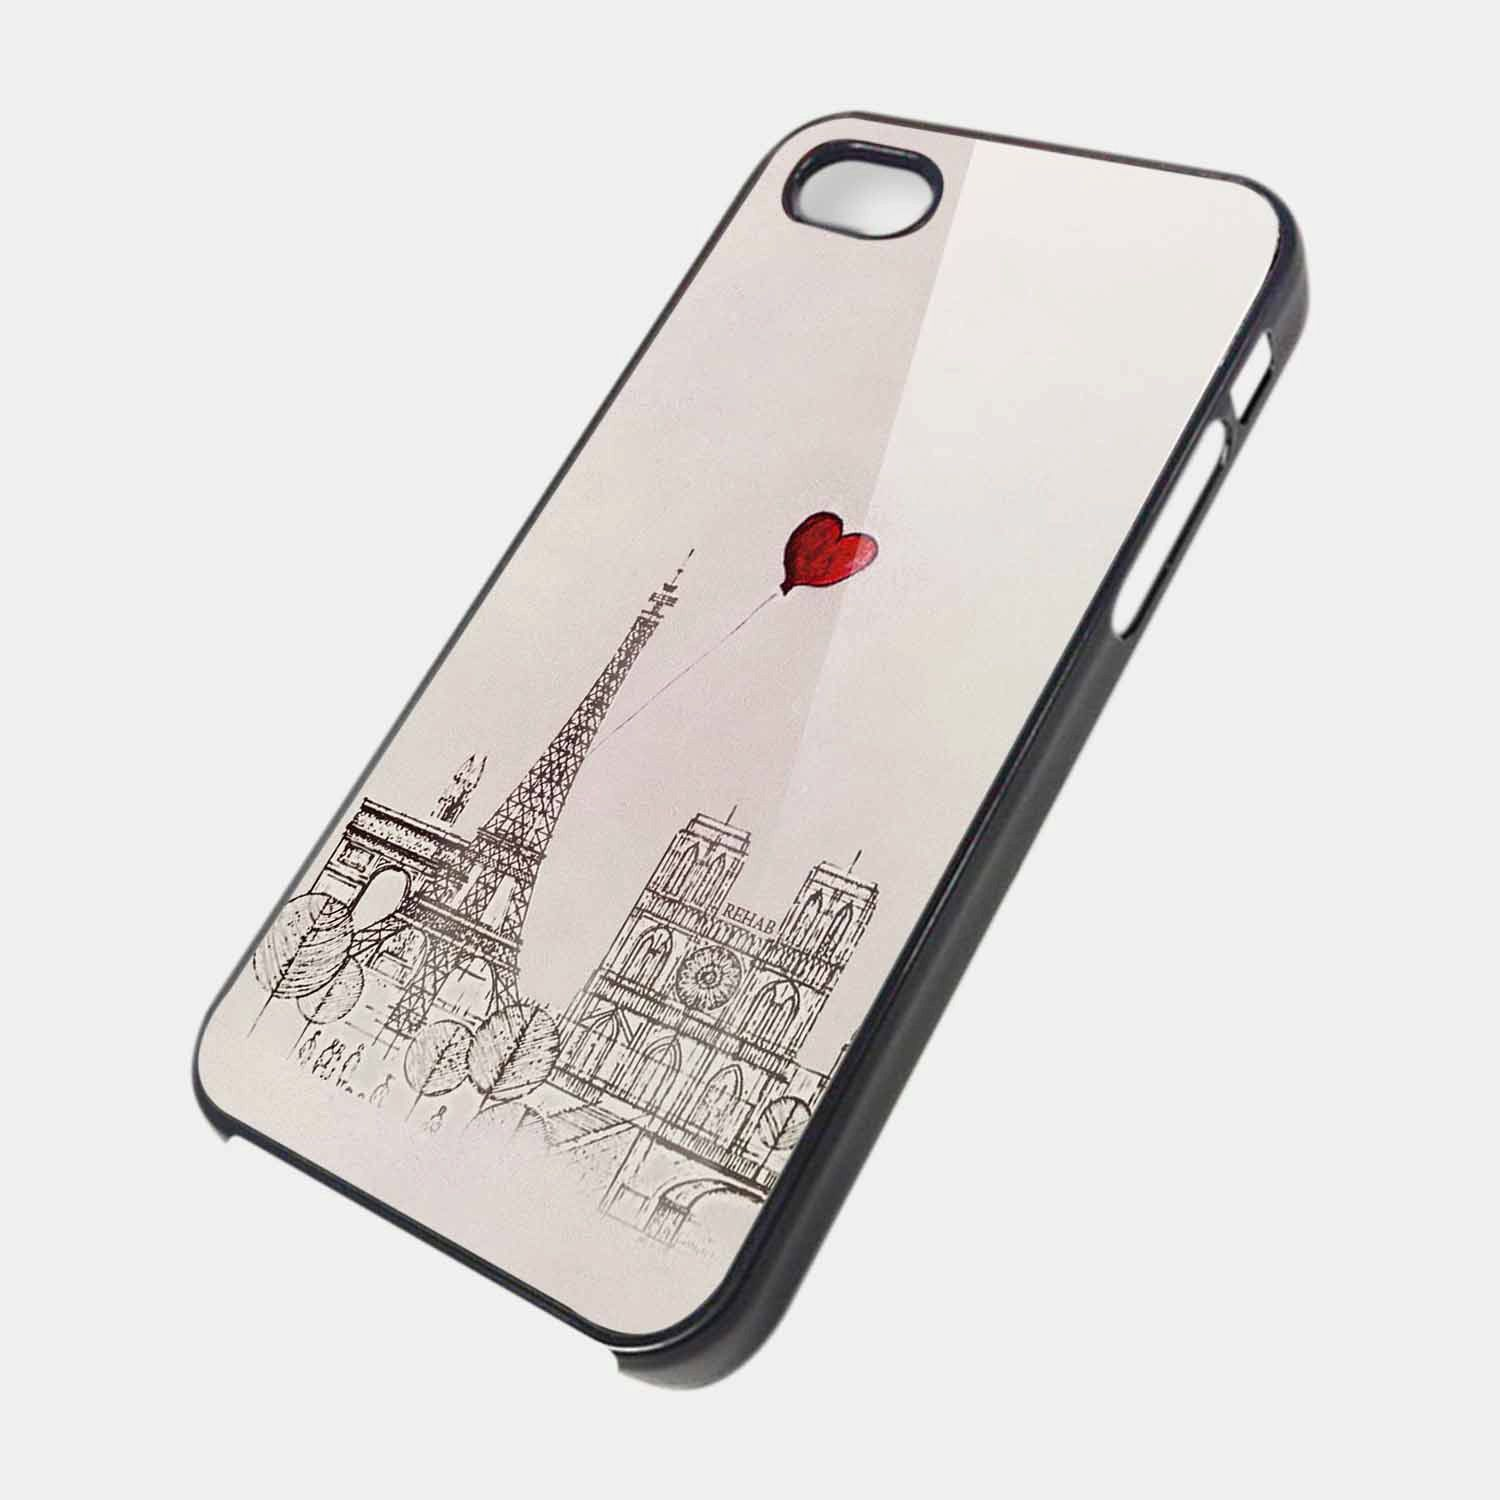 Paris eifel iLove iPhone iphone 4 /4s /5 ,samsung s2,samsung s3 case cover. $15.99, via Etsy.